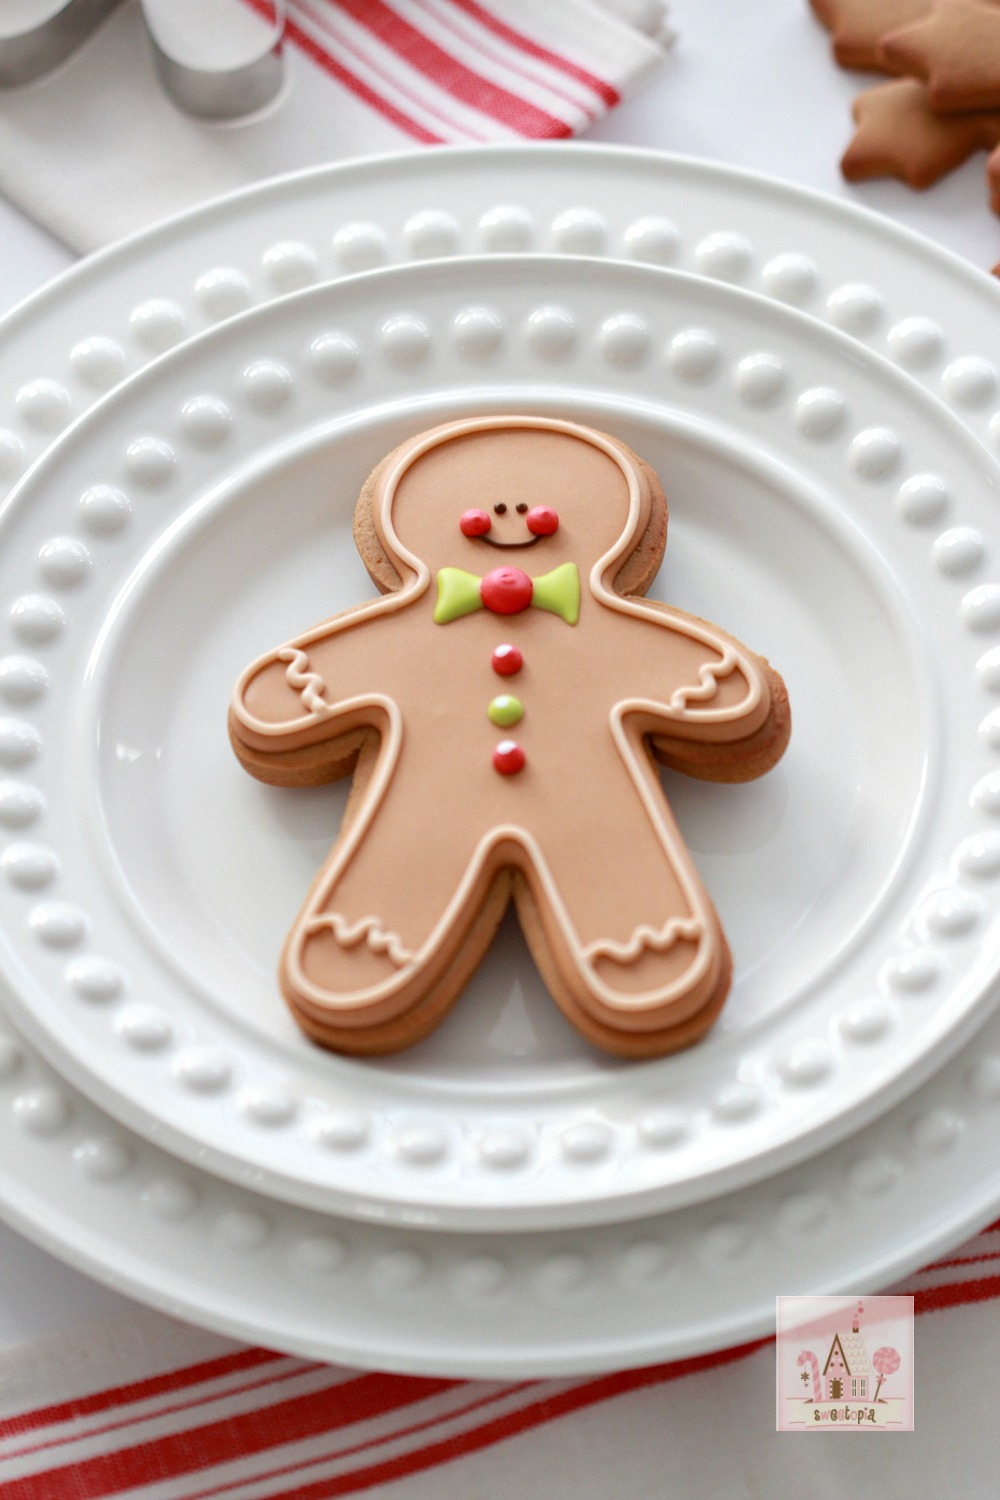 (Video & Recipe) How to Make Gingerbread Cut-Out Cookies ...